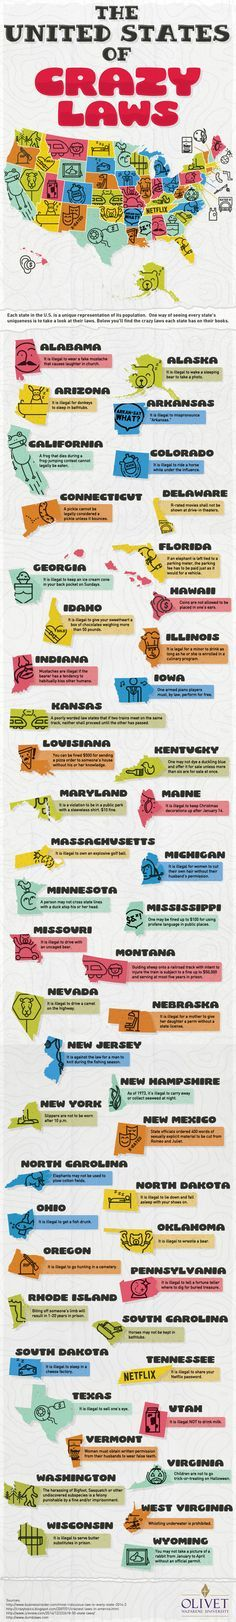 This Map Shows The Craziest Laws By State. You've Probably